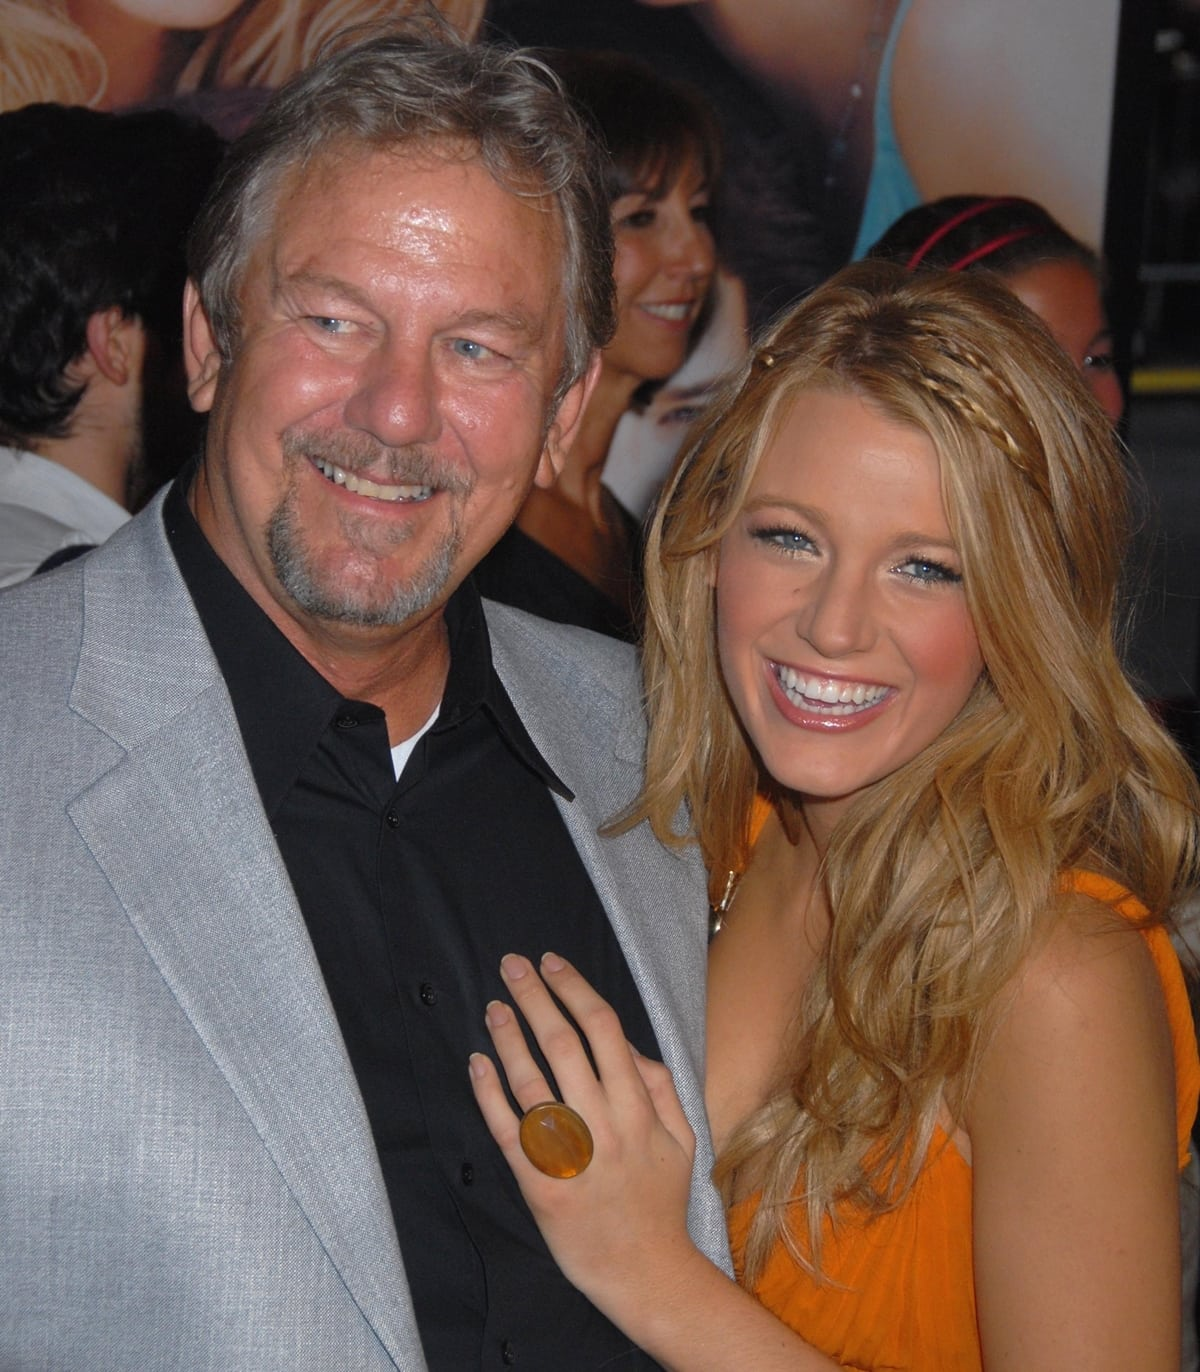 """Ernie Lively and his daughter Blake Lively at the premiere of """"The Sisterhood of the Traveling Pants 2"""""""